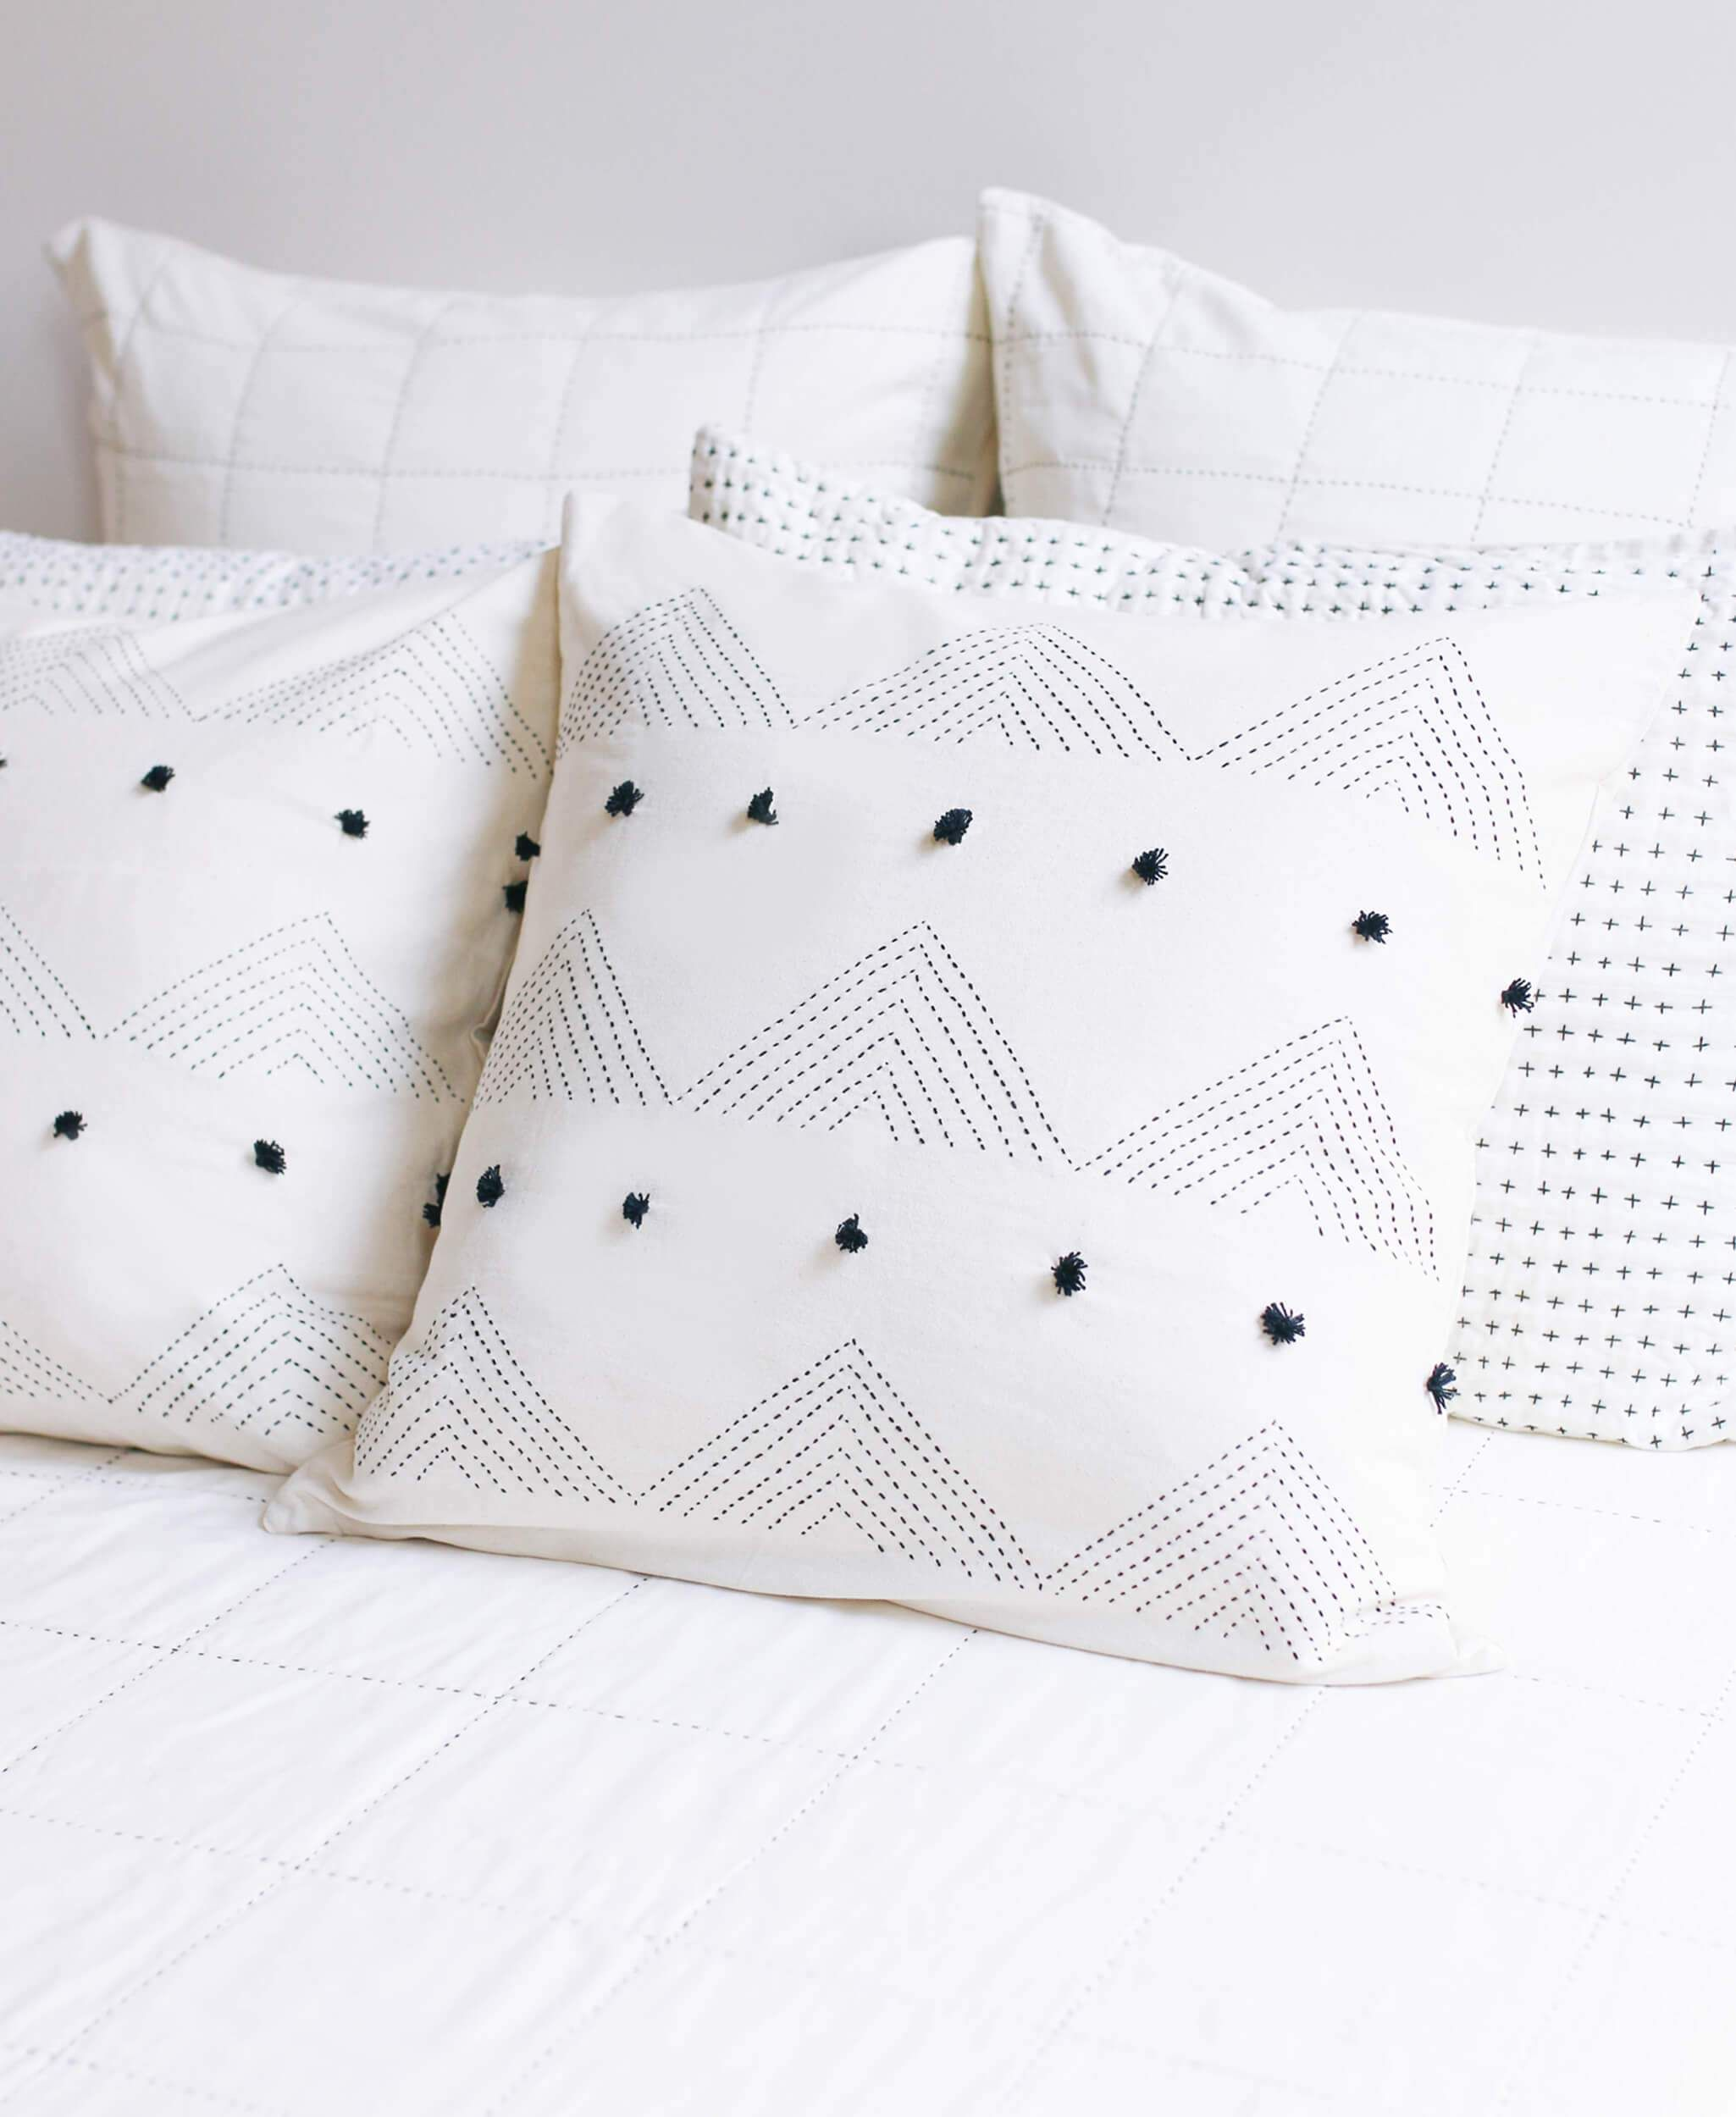 Add a touch of modern, global style to your home decor with this throw pillow. Its charming triangle stitch is enhanced by dynamic rows of playful pom poms. Pair it with other decorative pillows to create a one-of-a-kind mix for a bed or sofa. PRODUCT DETAILS: Size: 22